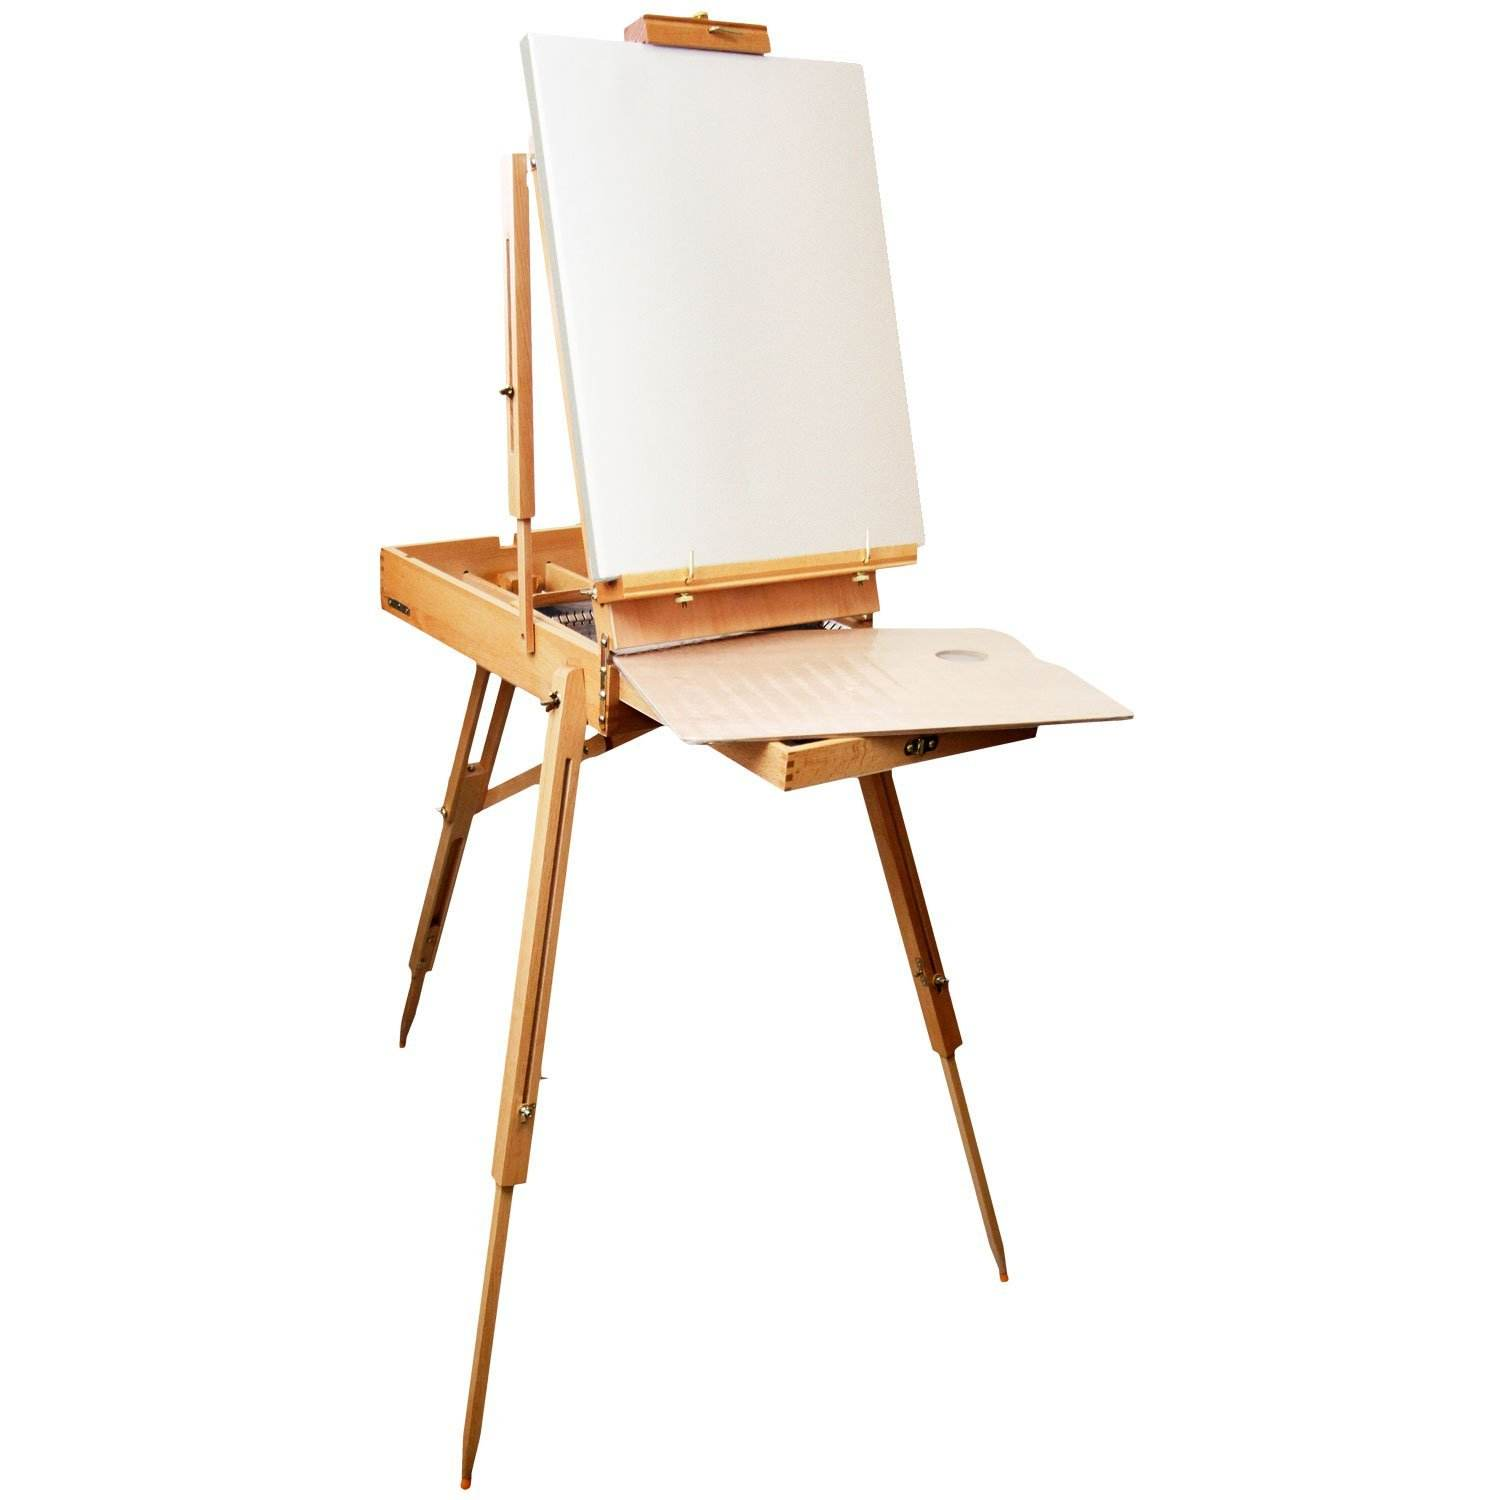 Ajustable Pine Wood Table Easel in Studio for painting